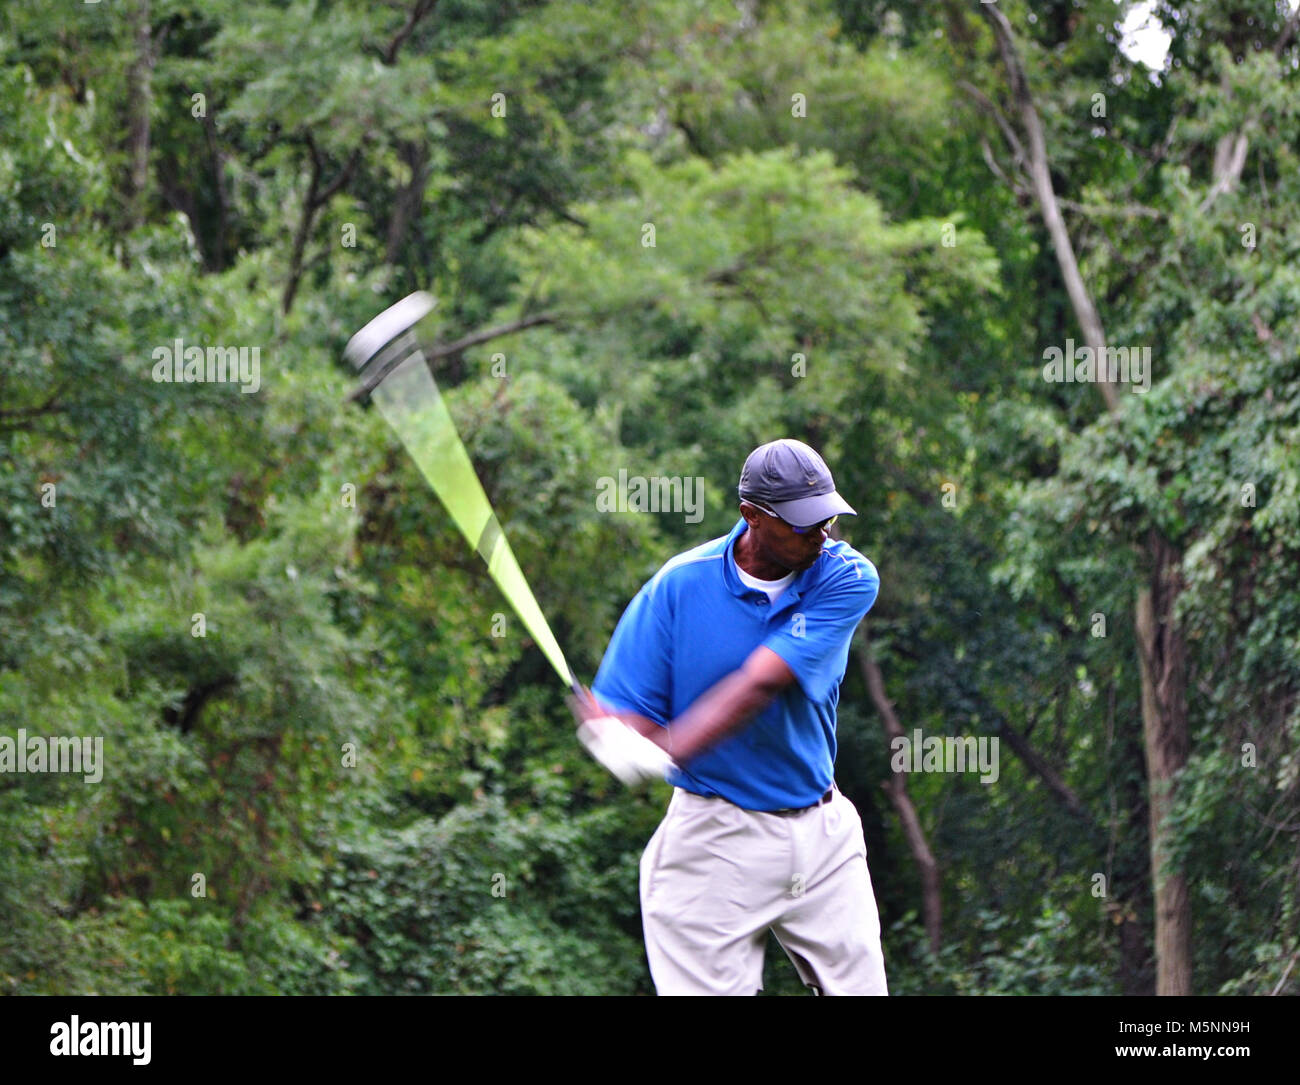 Male golfer teeing off with driver on a par 4 - Stock Image